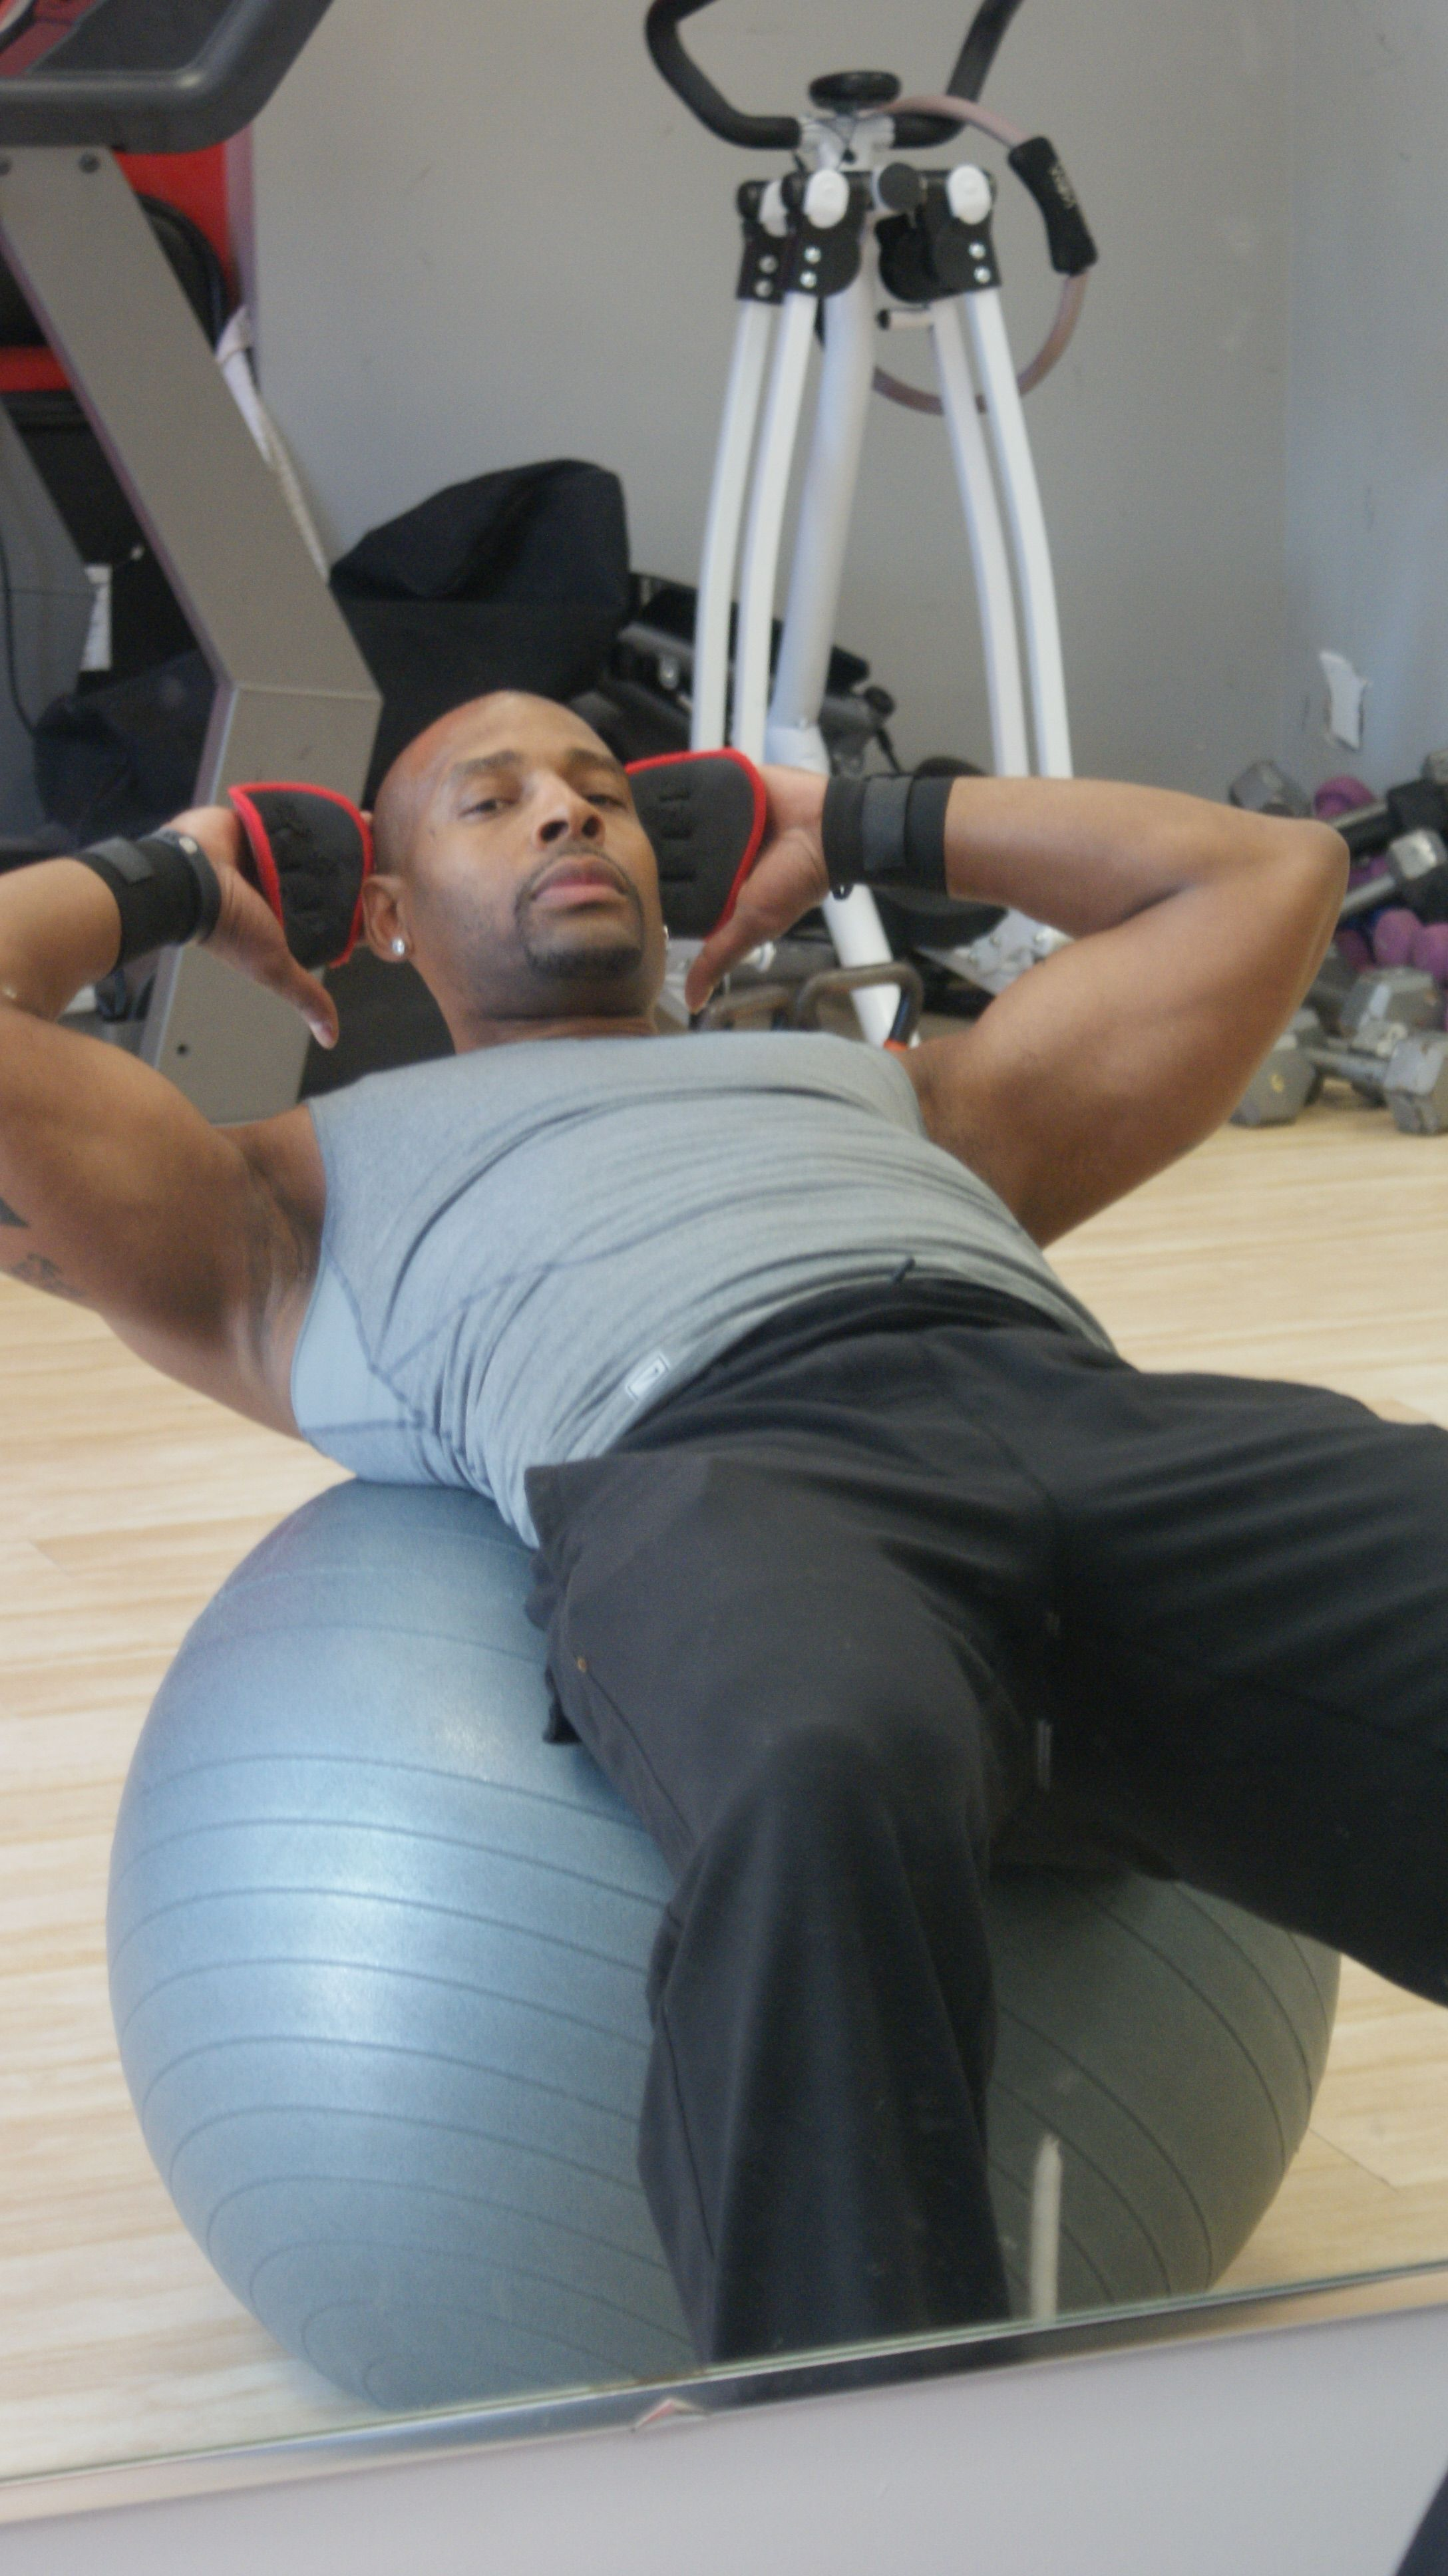 Working that core!!!